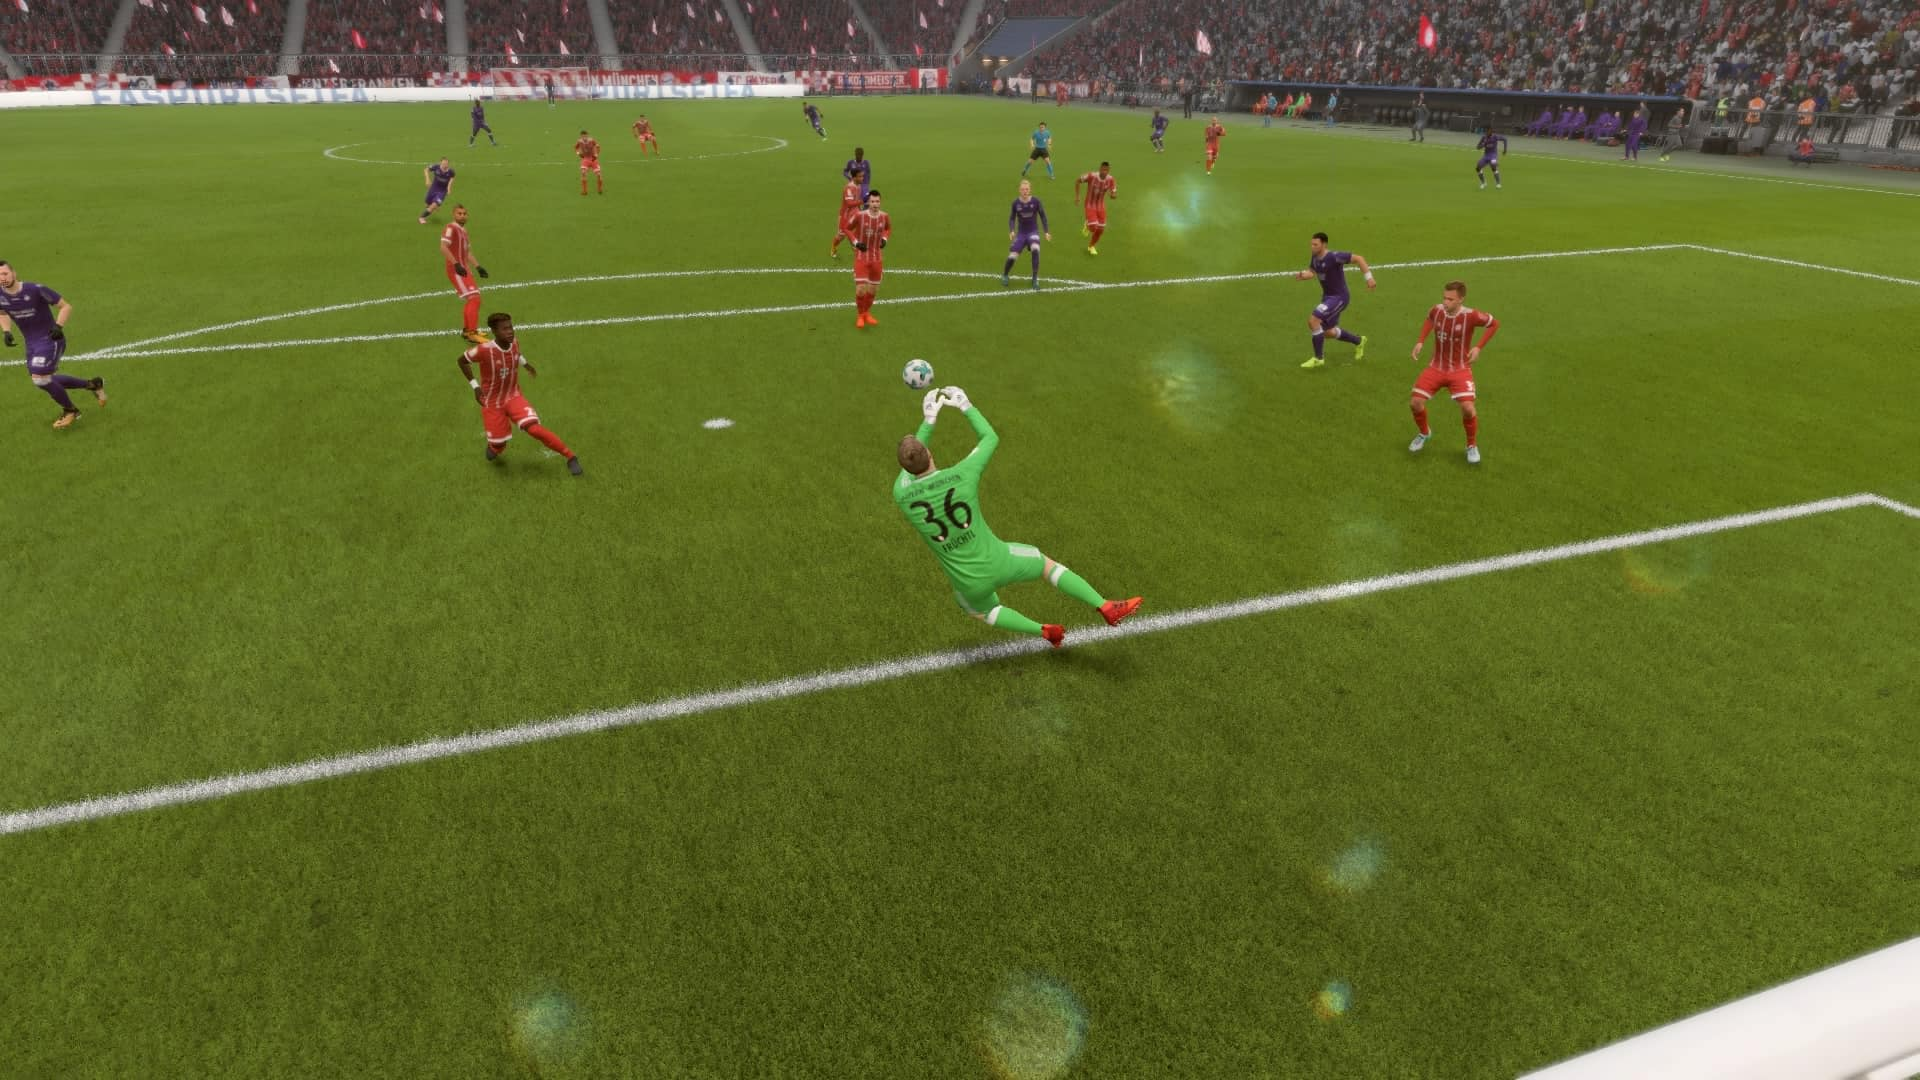 Christian Fruchtl makes a save in FIFA 18